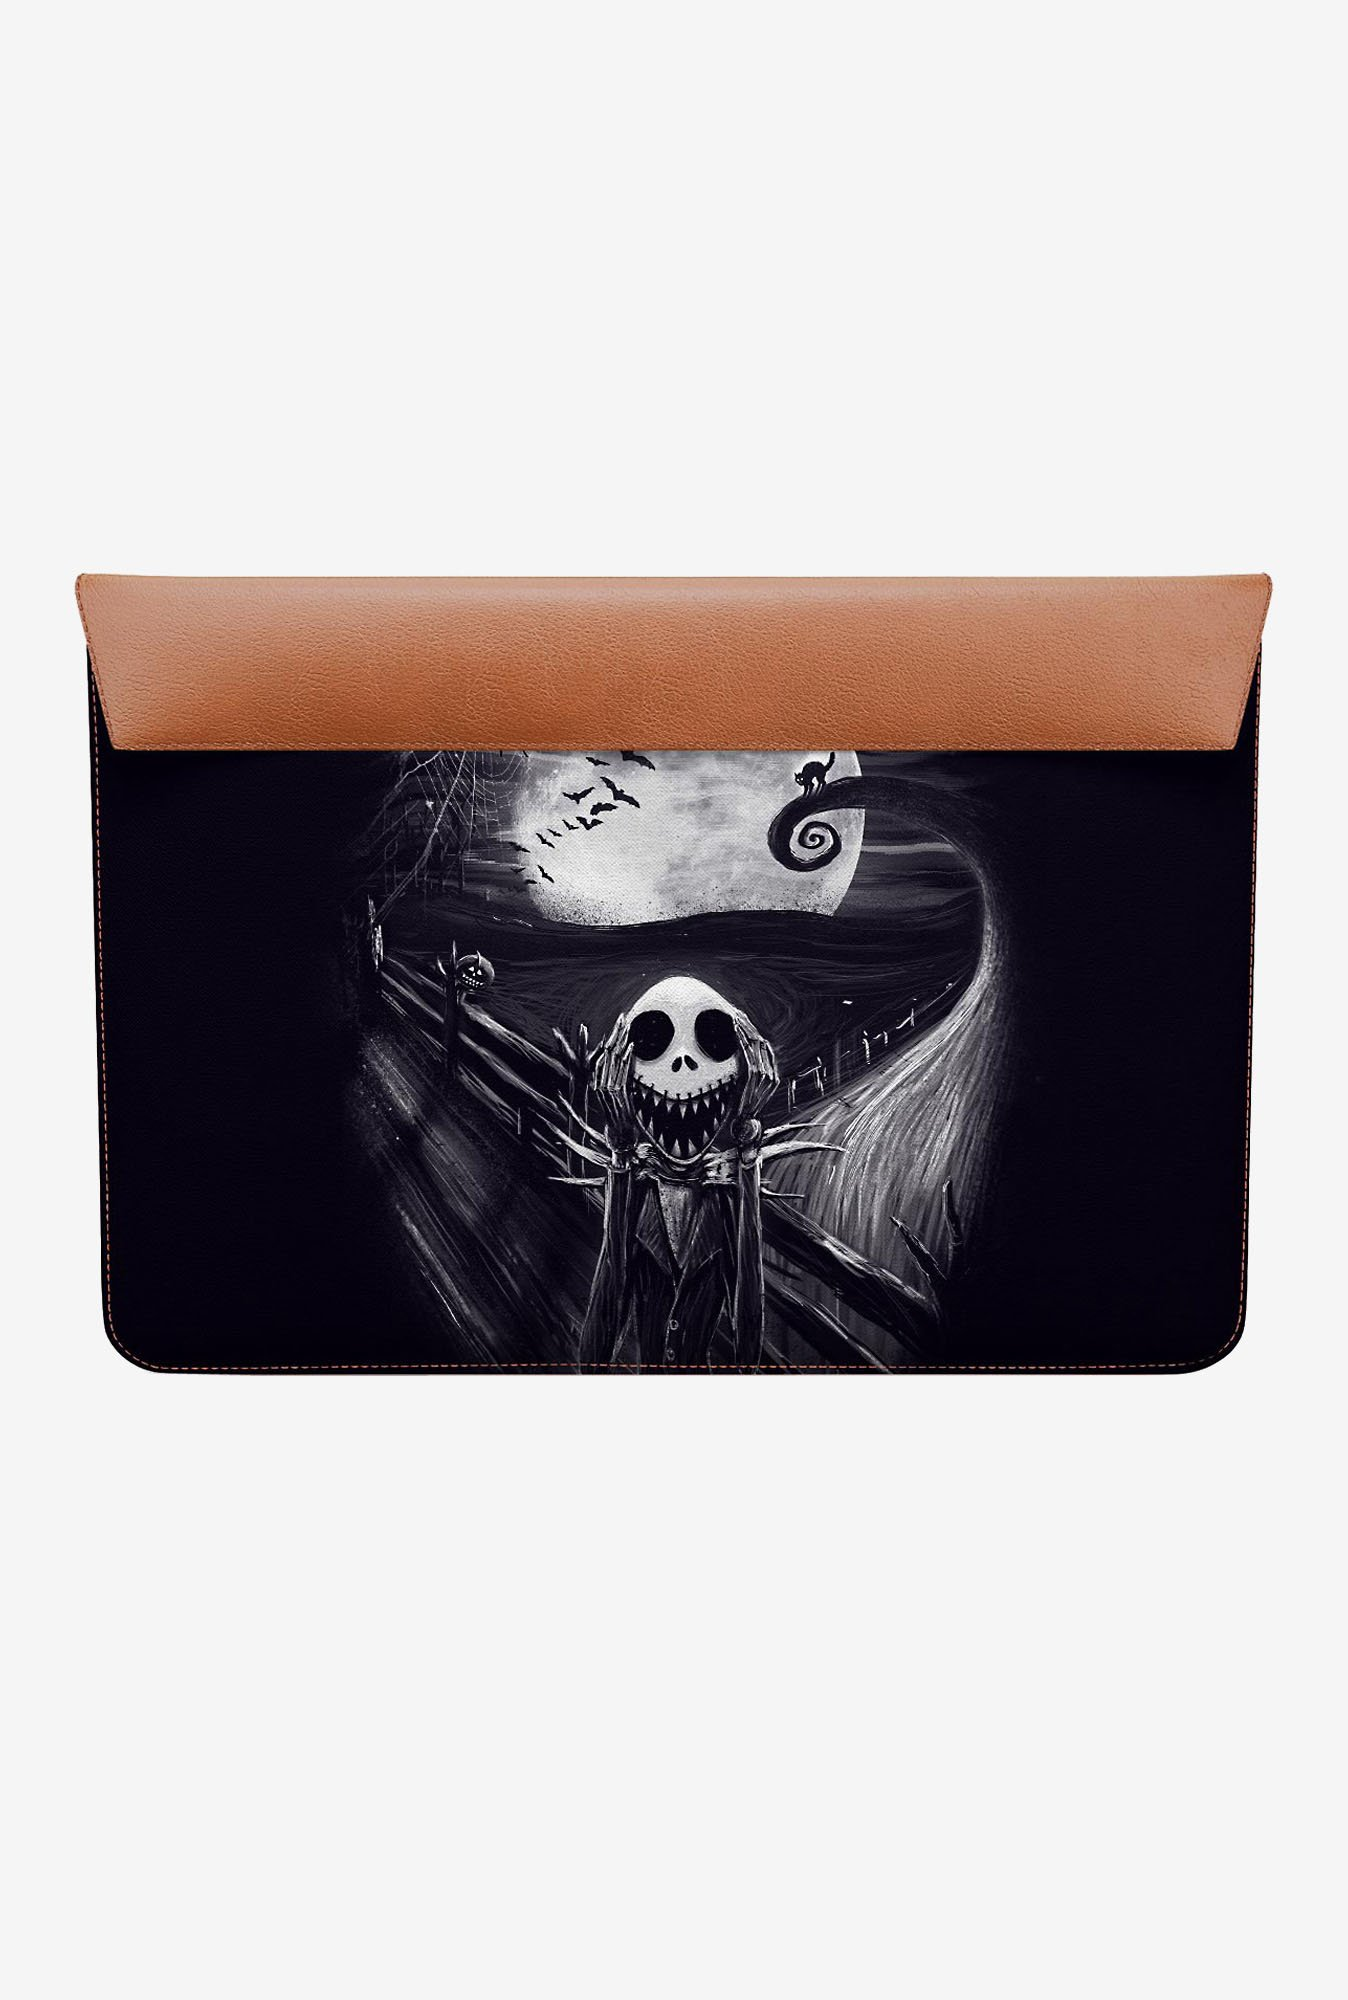 DailyObjects Scream Before MacBook 12 Envelope Sleeve